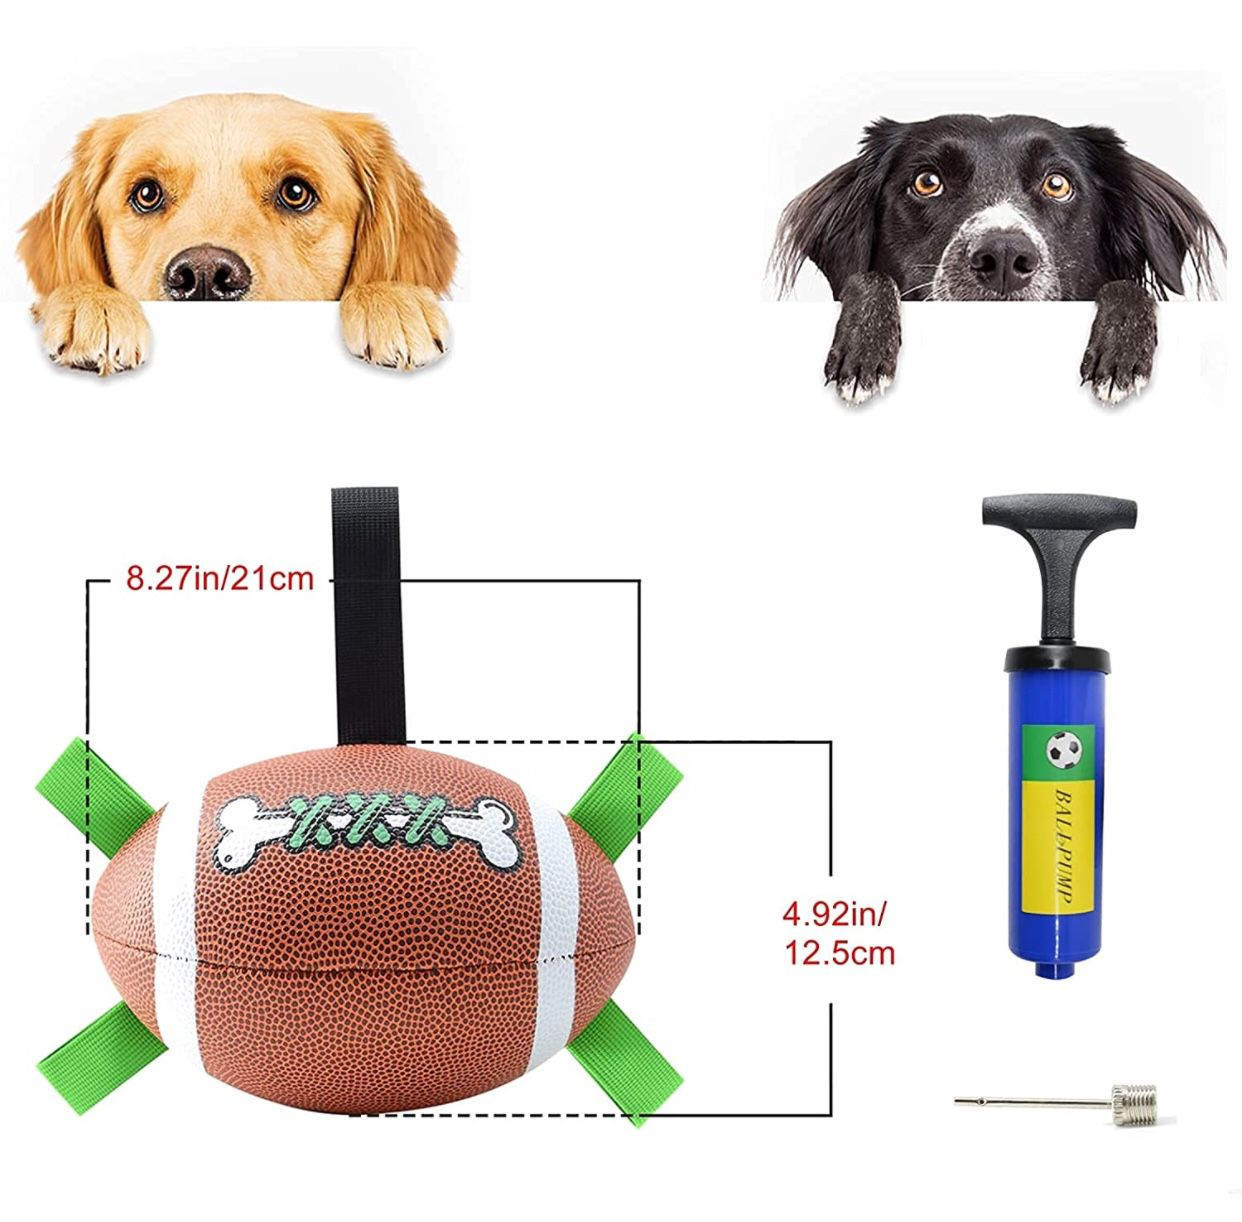 Dog Ball, Dog Toys for Large Dogs, Interactive Dog Toy for Medium & Small Dogs, Water Toys for Dogs (8 Inch)